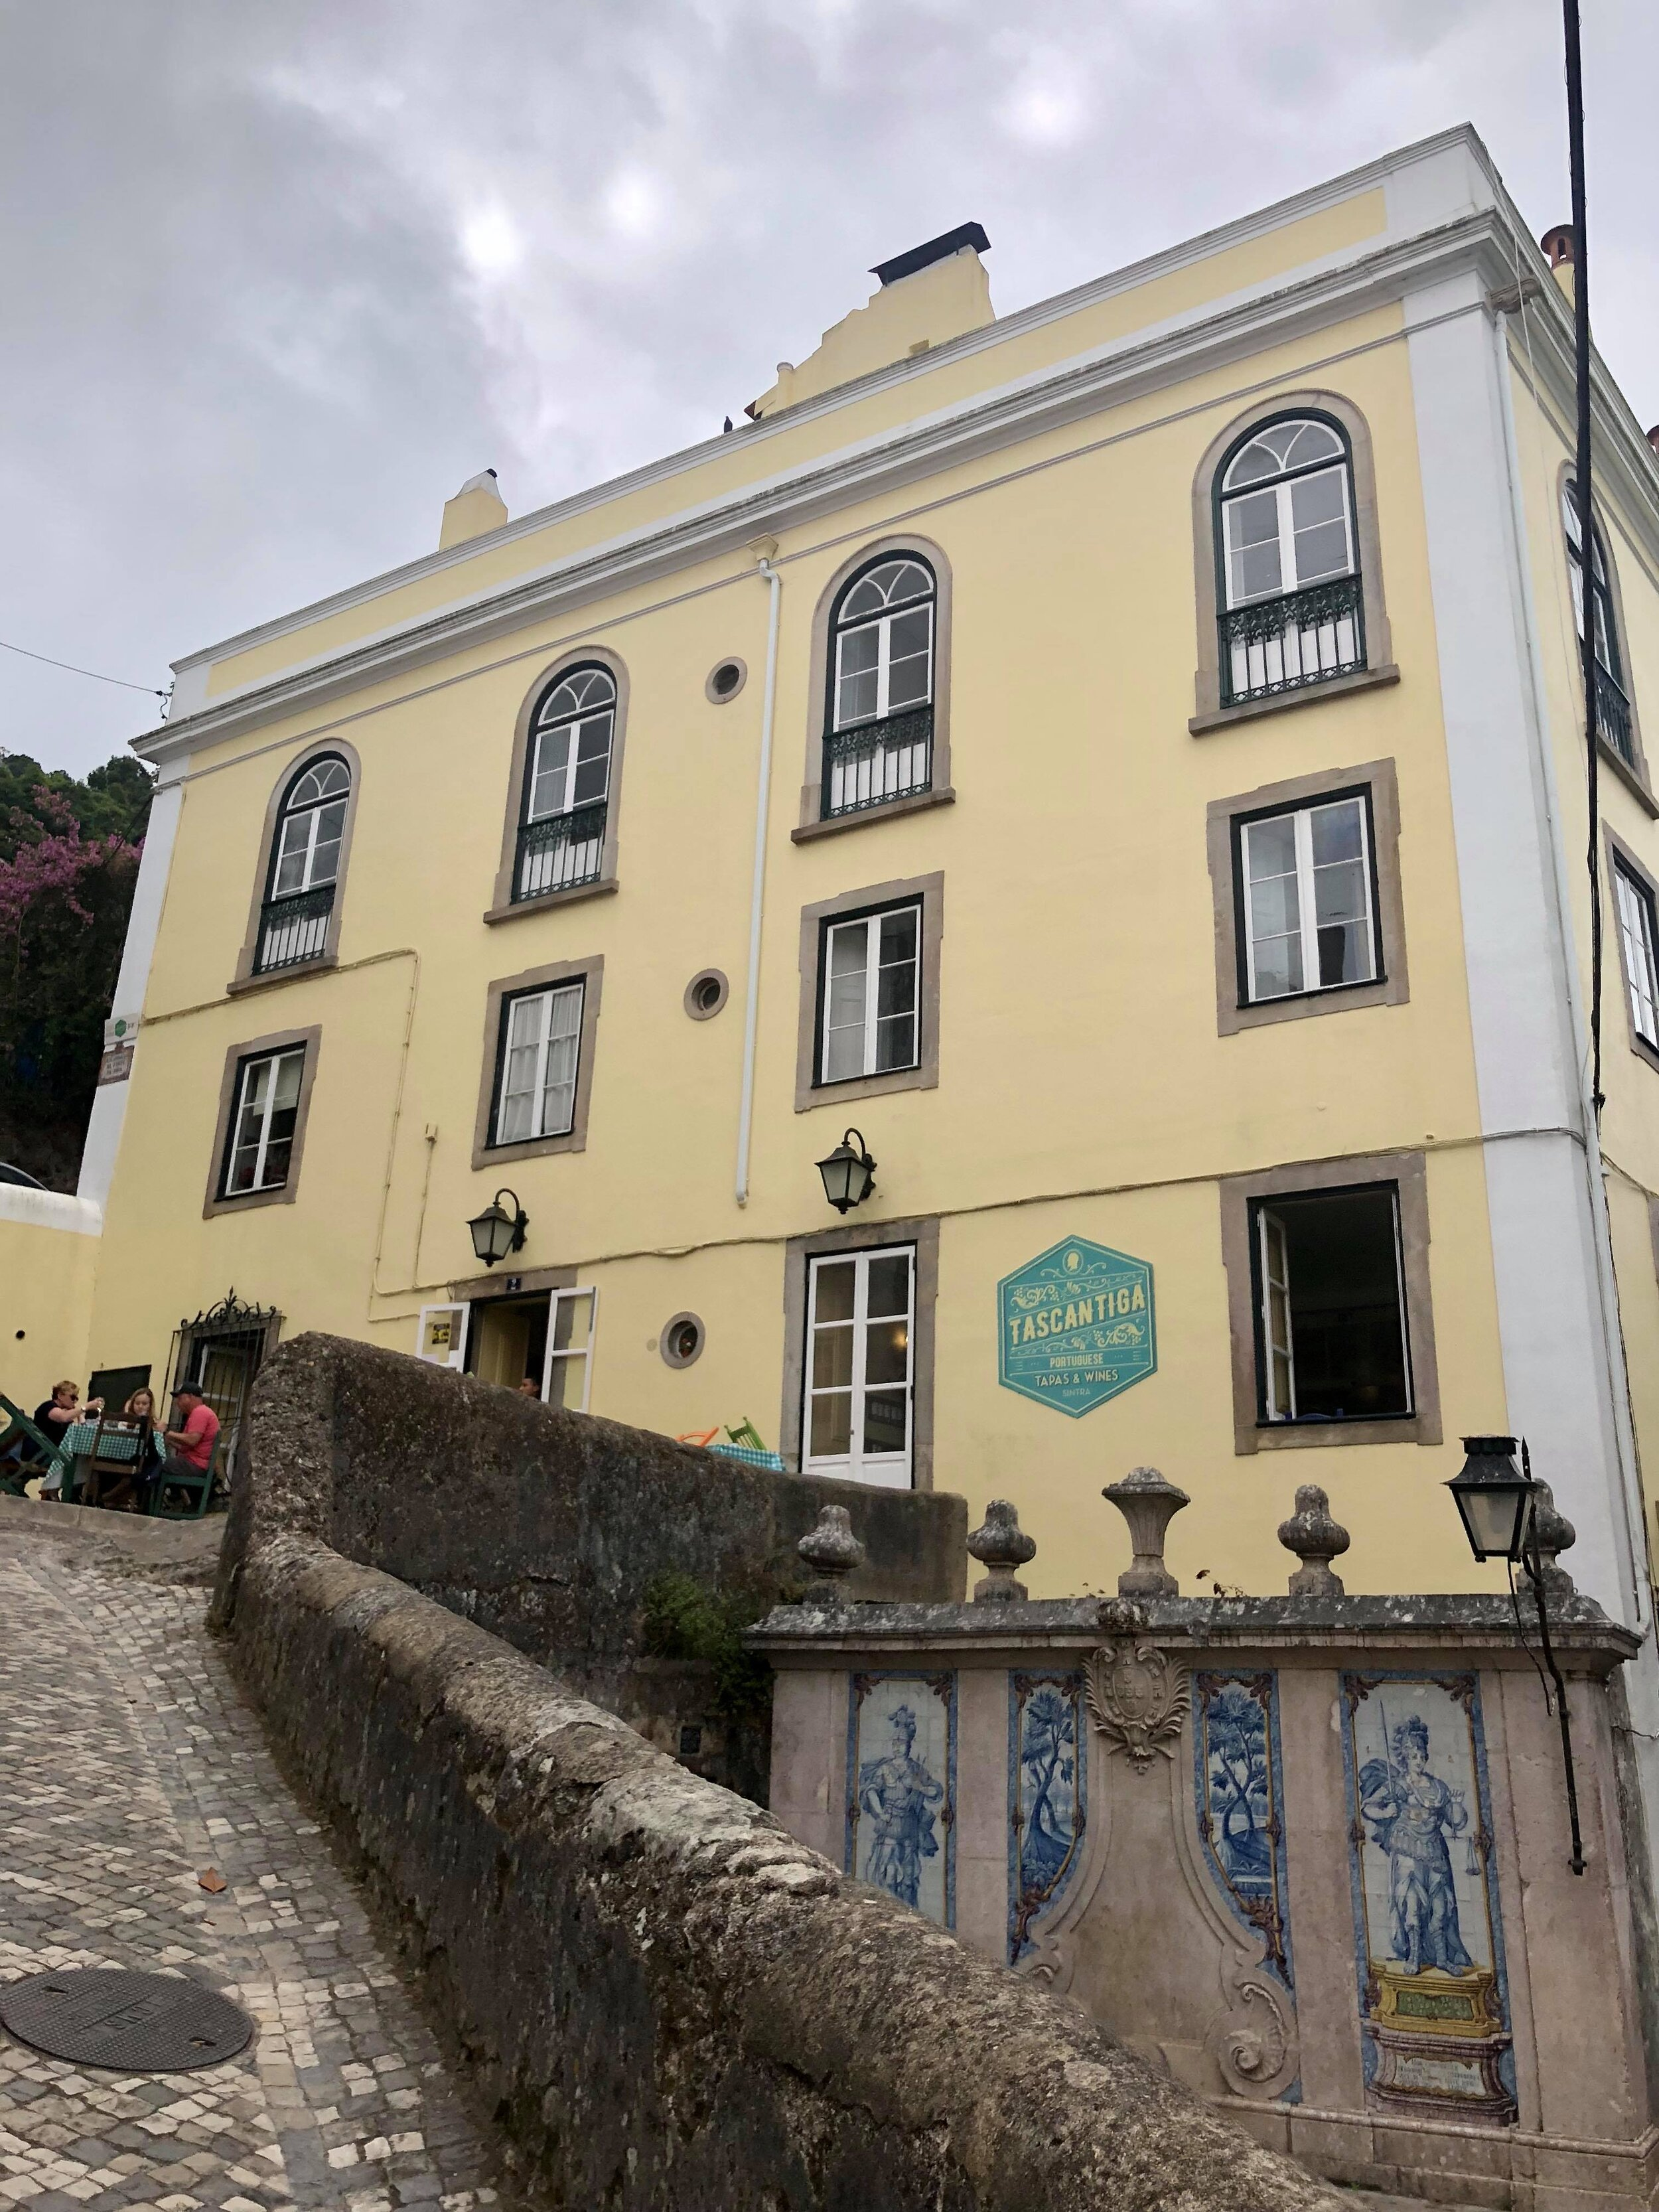 - In the actual town of Sintra, amid cobblestone streets and twisting alleyways, and while looking for a place to eat, we came upon Tascantina. Ok, I'll admit it - we found the restaurant looking at reviews online - this one had essentially 5 star reviews from thousands of people, so it must've been worth a visit (right?)And indeed, popular opinion did not disappoint (as we all know, sometimes it does), Tascantina is indeed a great place to stop by for a bite to eat in the old town of Sintra.